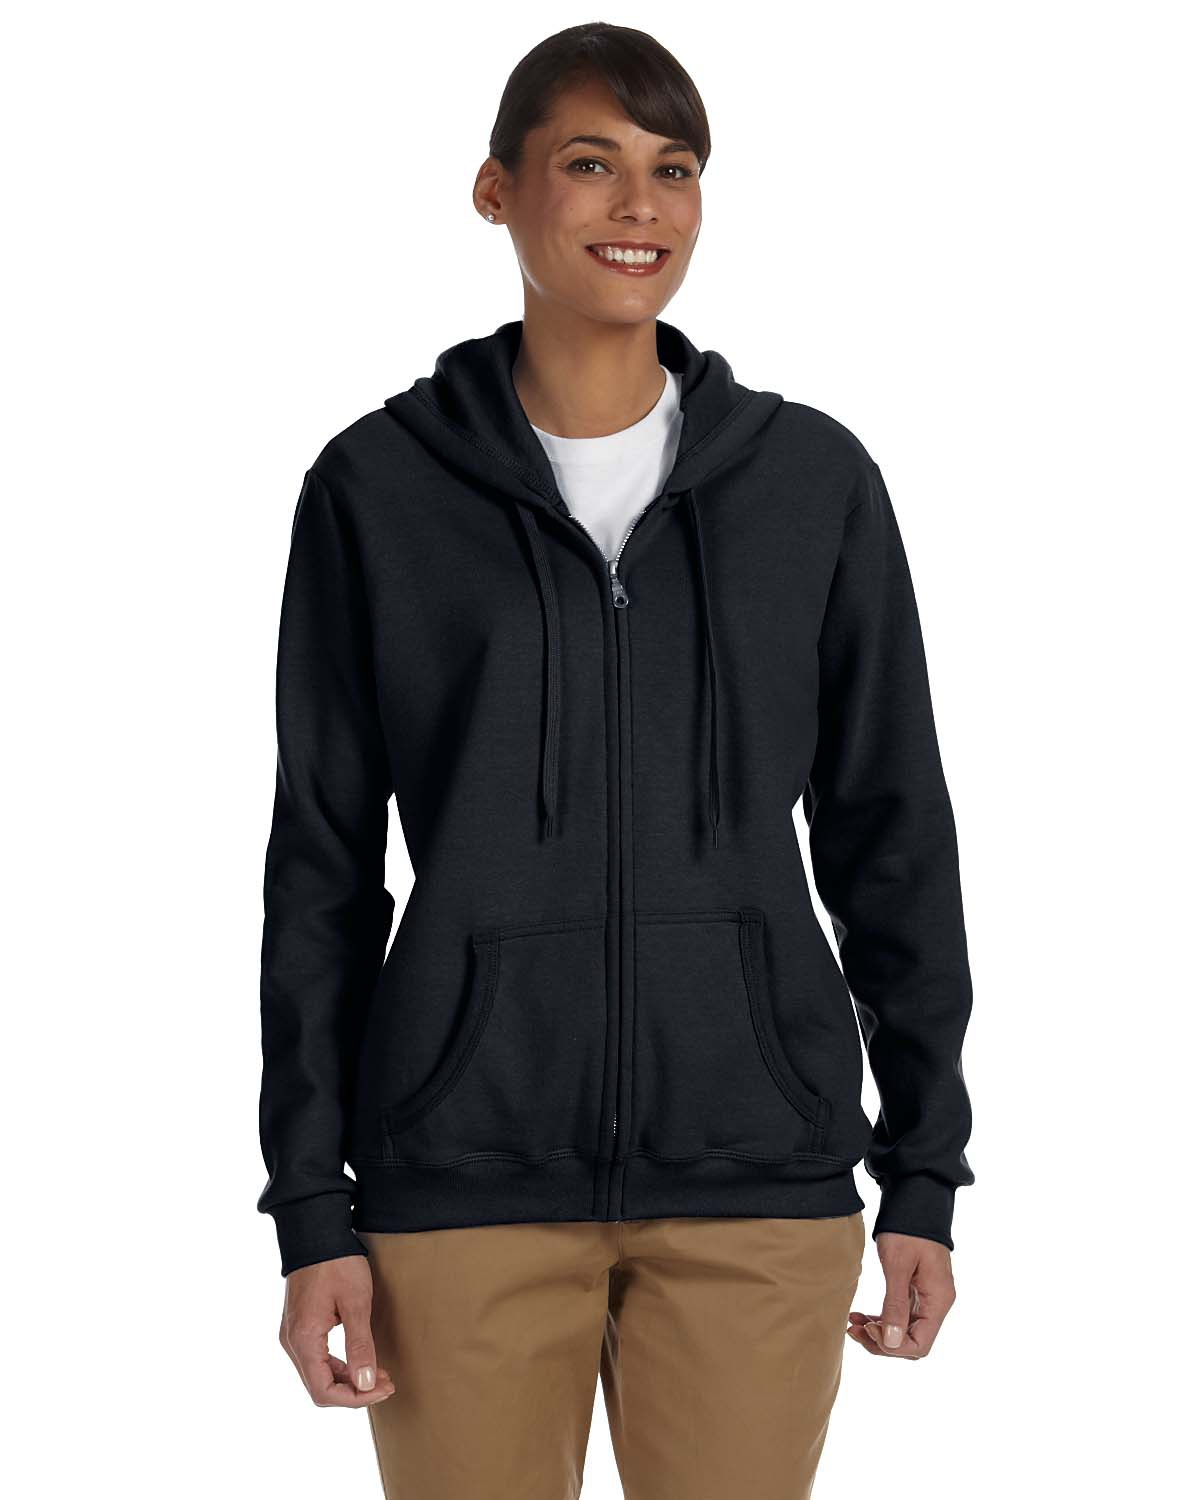 Gildan - Heavy Blend Ladies' Full-Zip Hooded Sweatshirt